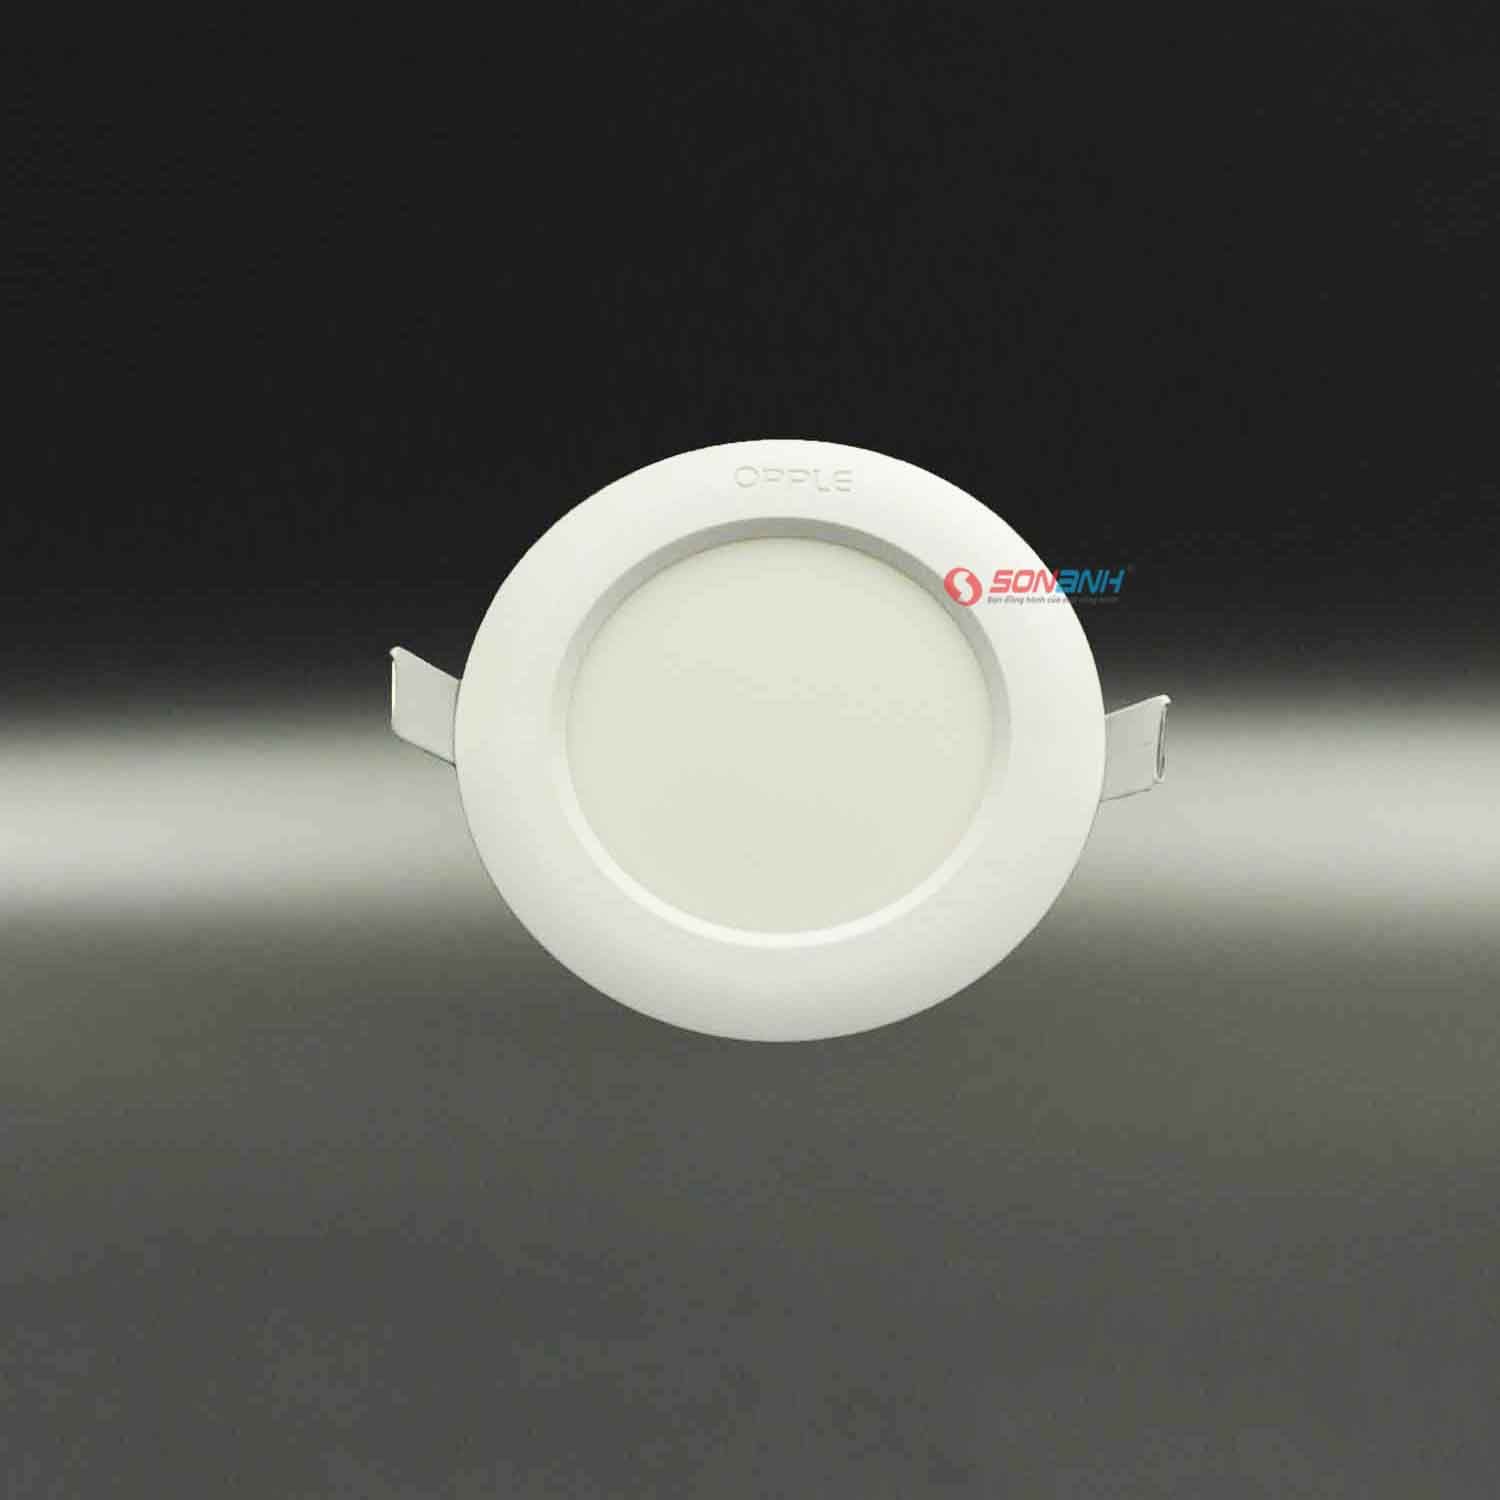 Đèn Downlight LED 12W 3000K D150 - Opple